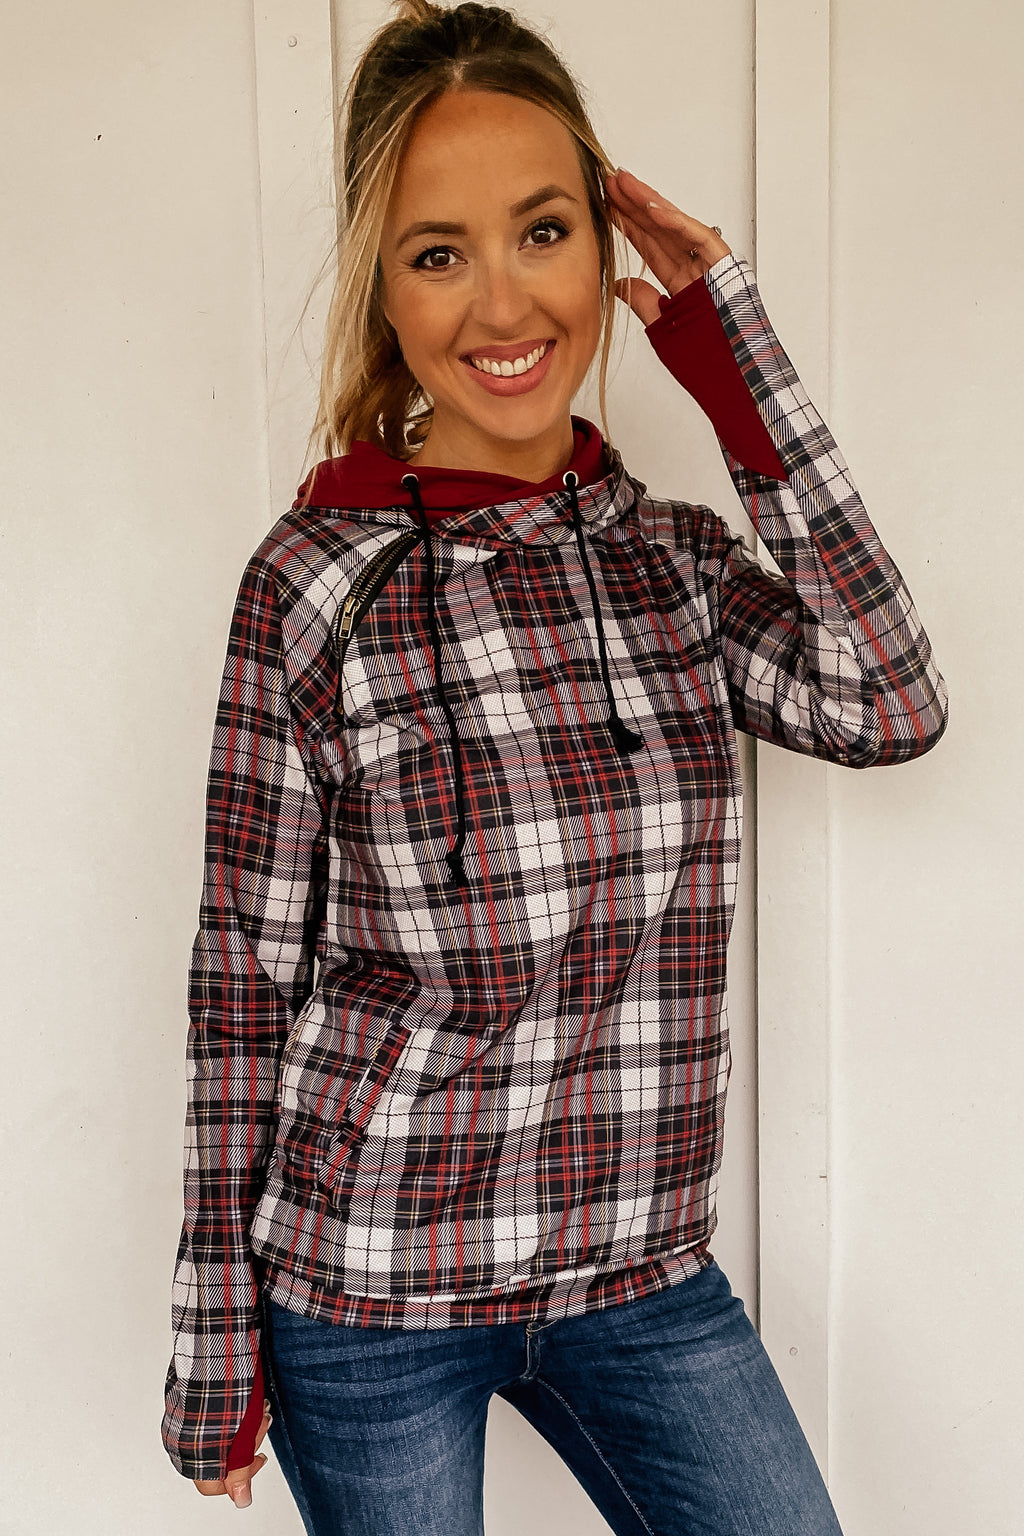 The Double Hooded Sweatshirt in Christmas Plaid